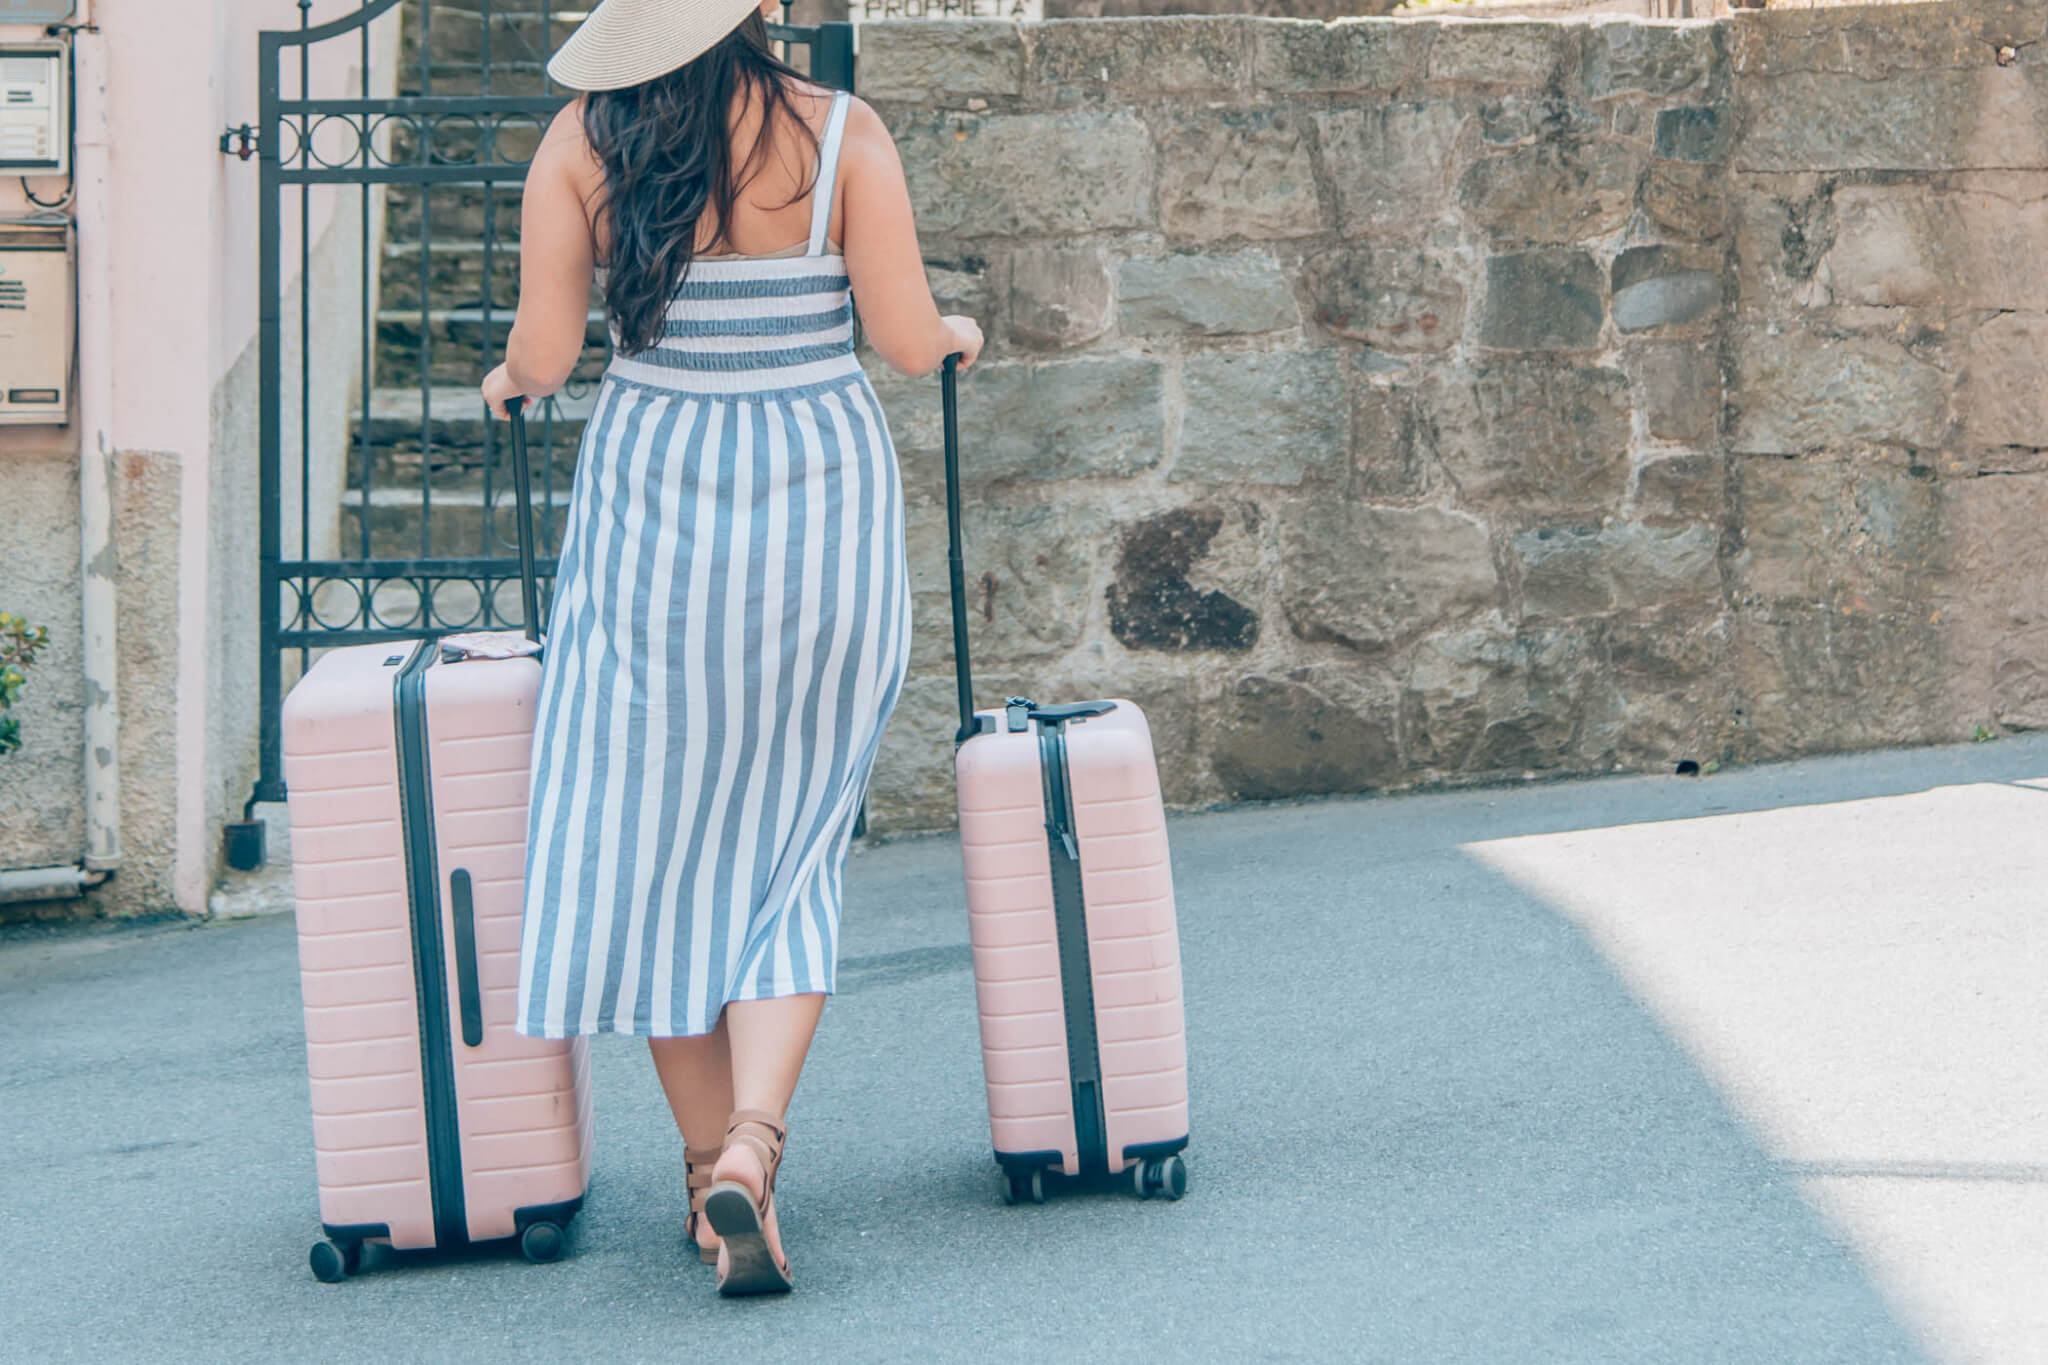 Clothing Packing List for Europe Summer Vacay